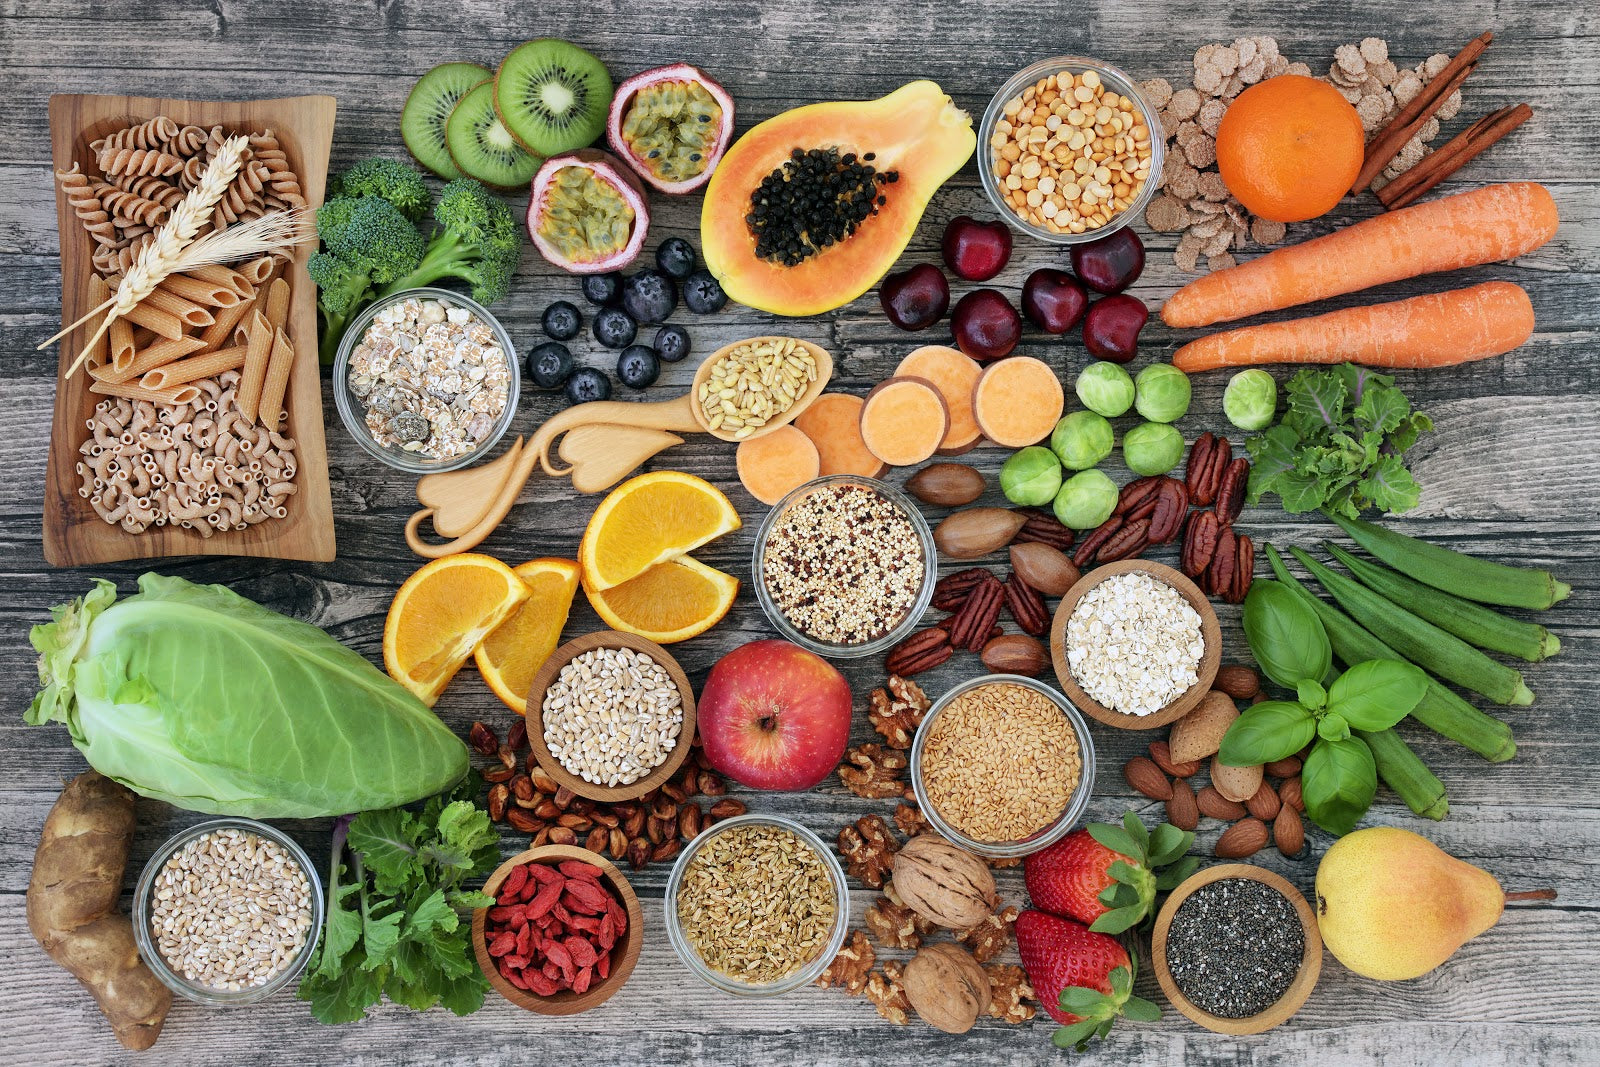 Prebiotic Foods That Are Good For Your Gut